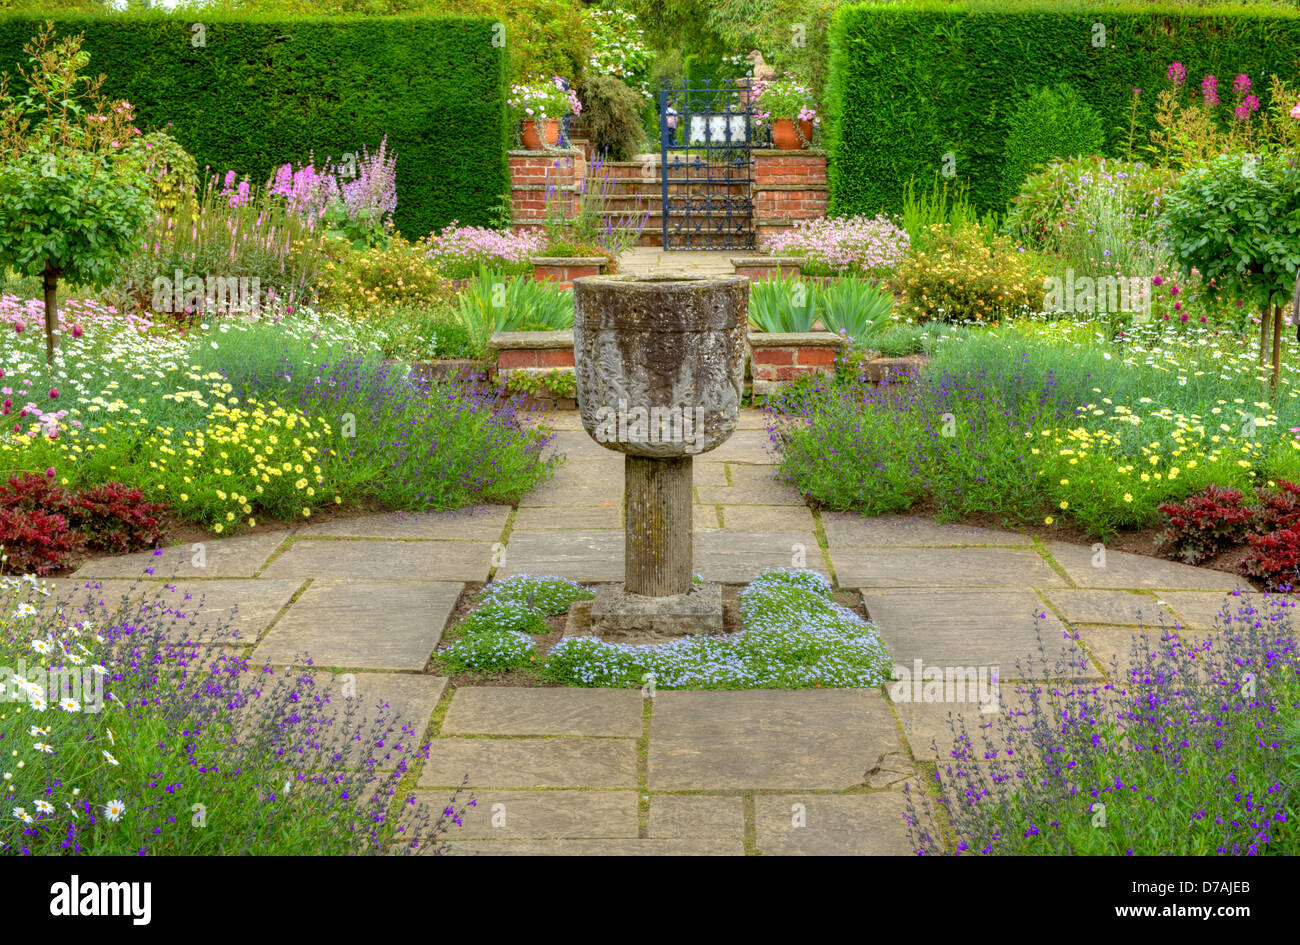 Flagged formal garden with a stone vase ornament and summer flowers. Stock Photo